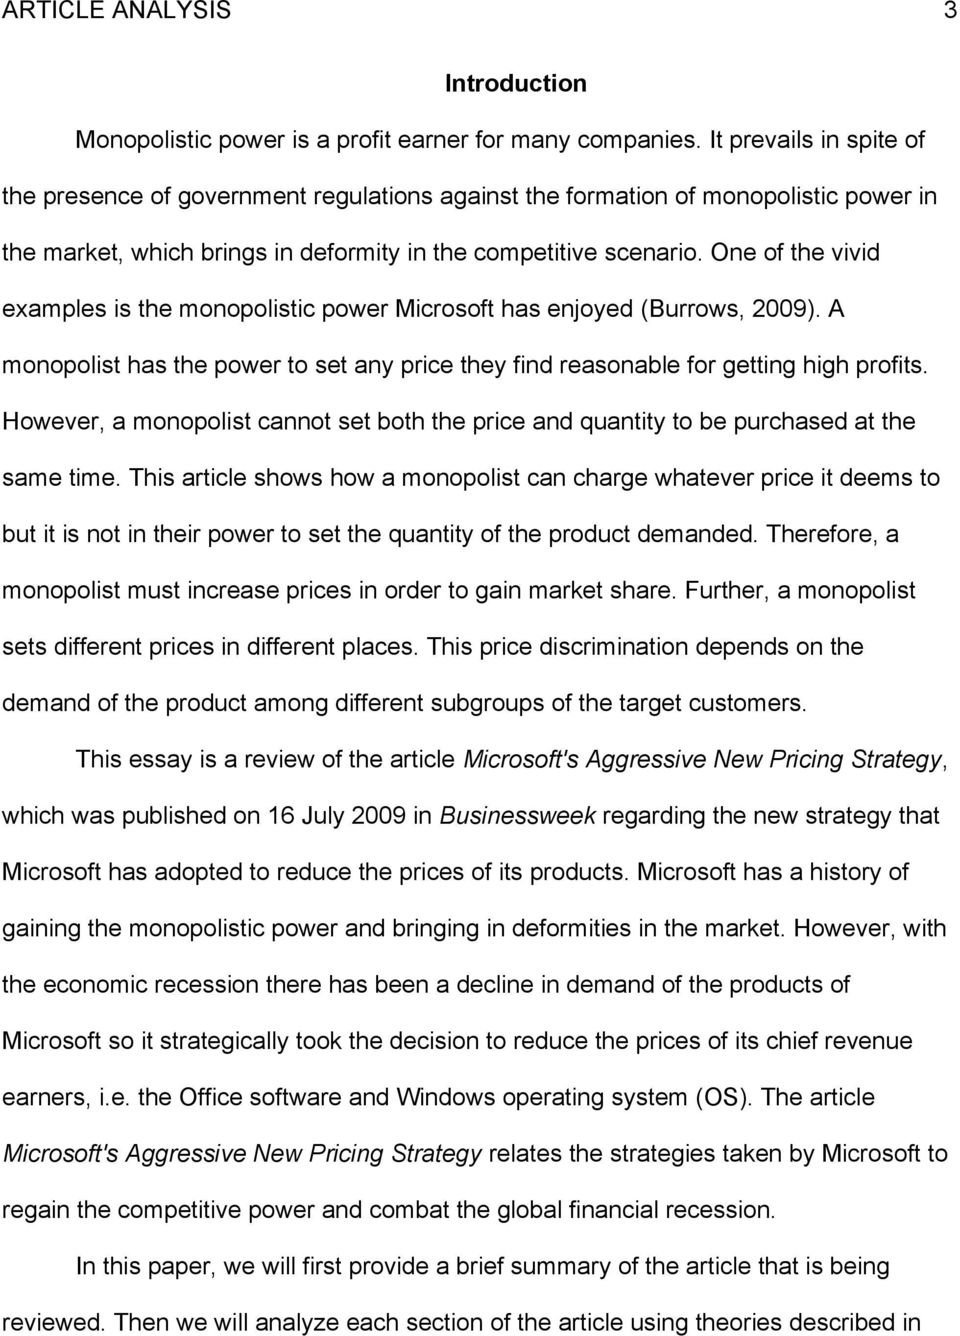 One of the vivid examples is the monopolistic power Microsoft has enjoyed (Burrows, 2009). A monopolist has the power to set any price they find reasonable for getting high profits.